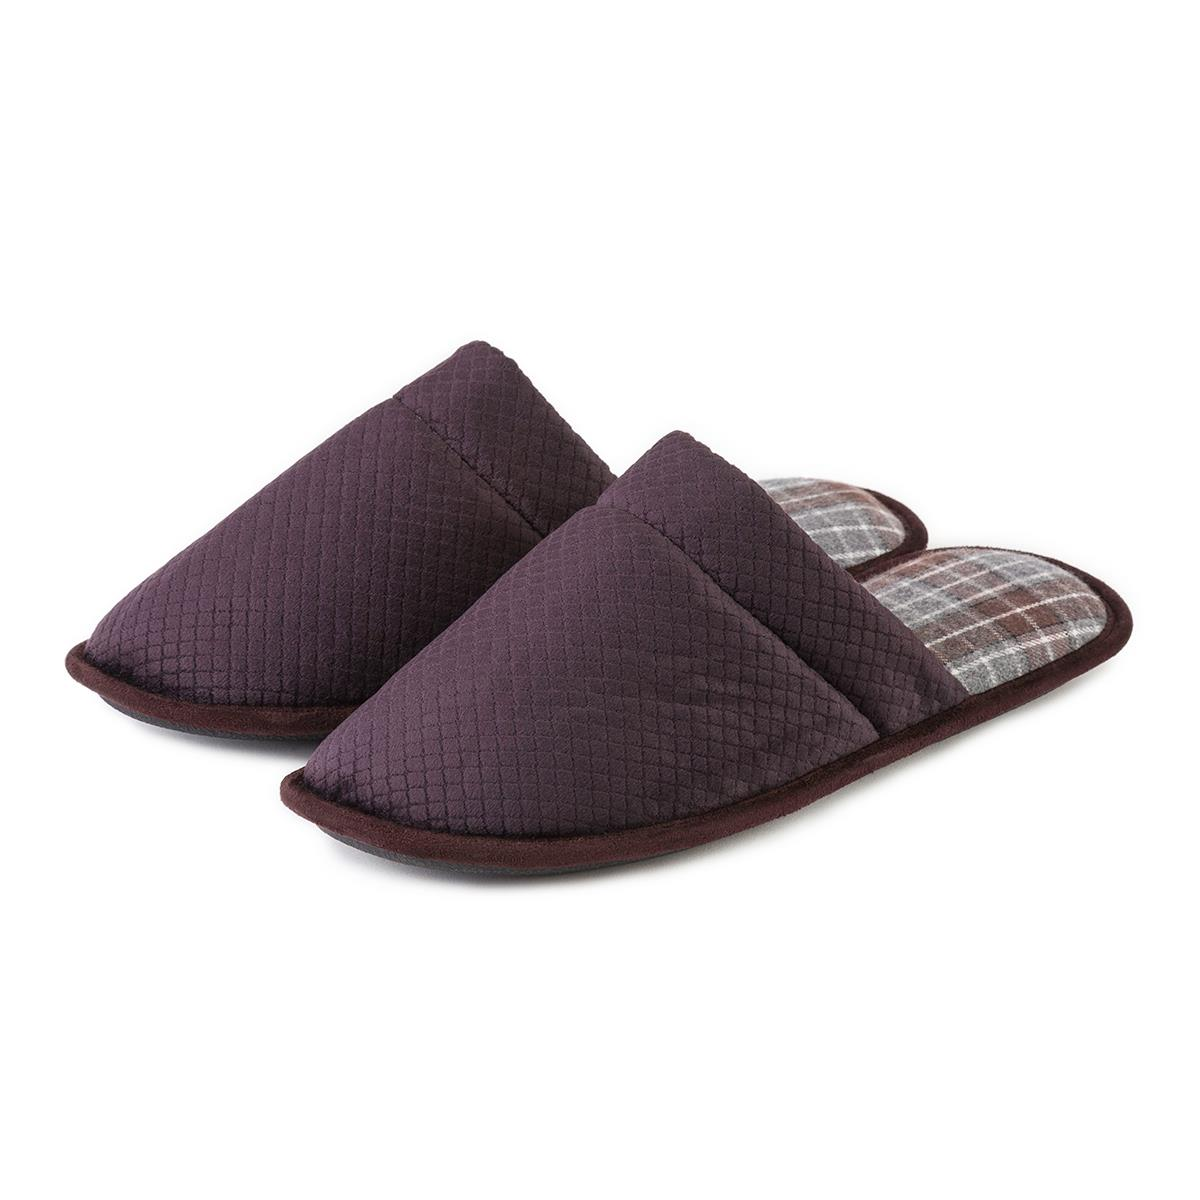 For Sale At Totes Mens Cord Mule Slippers